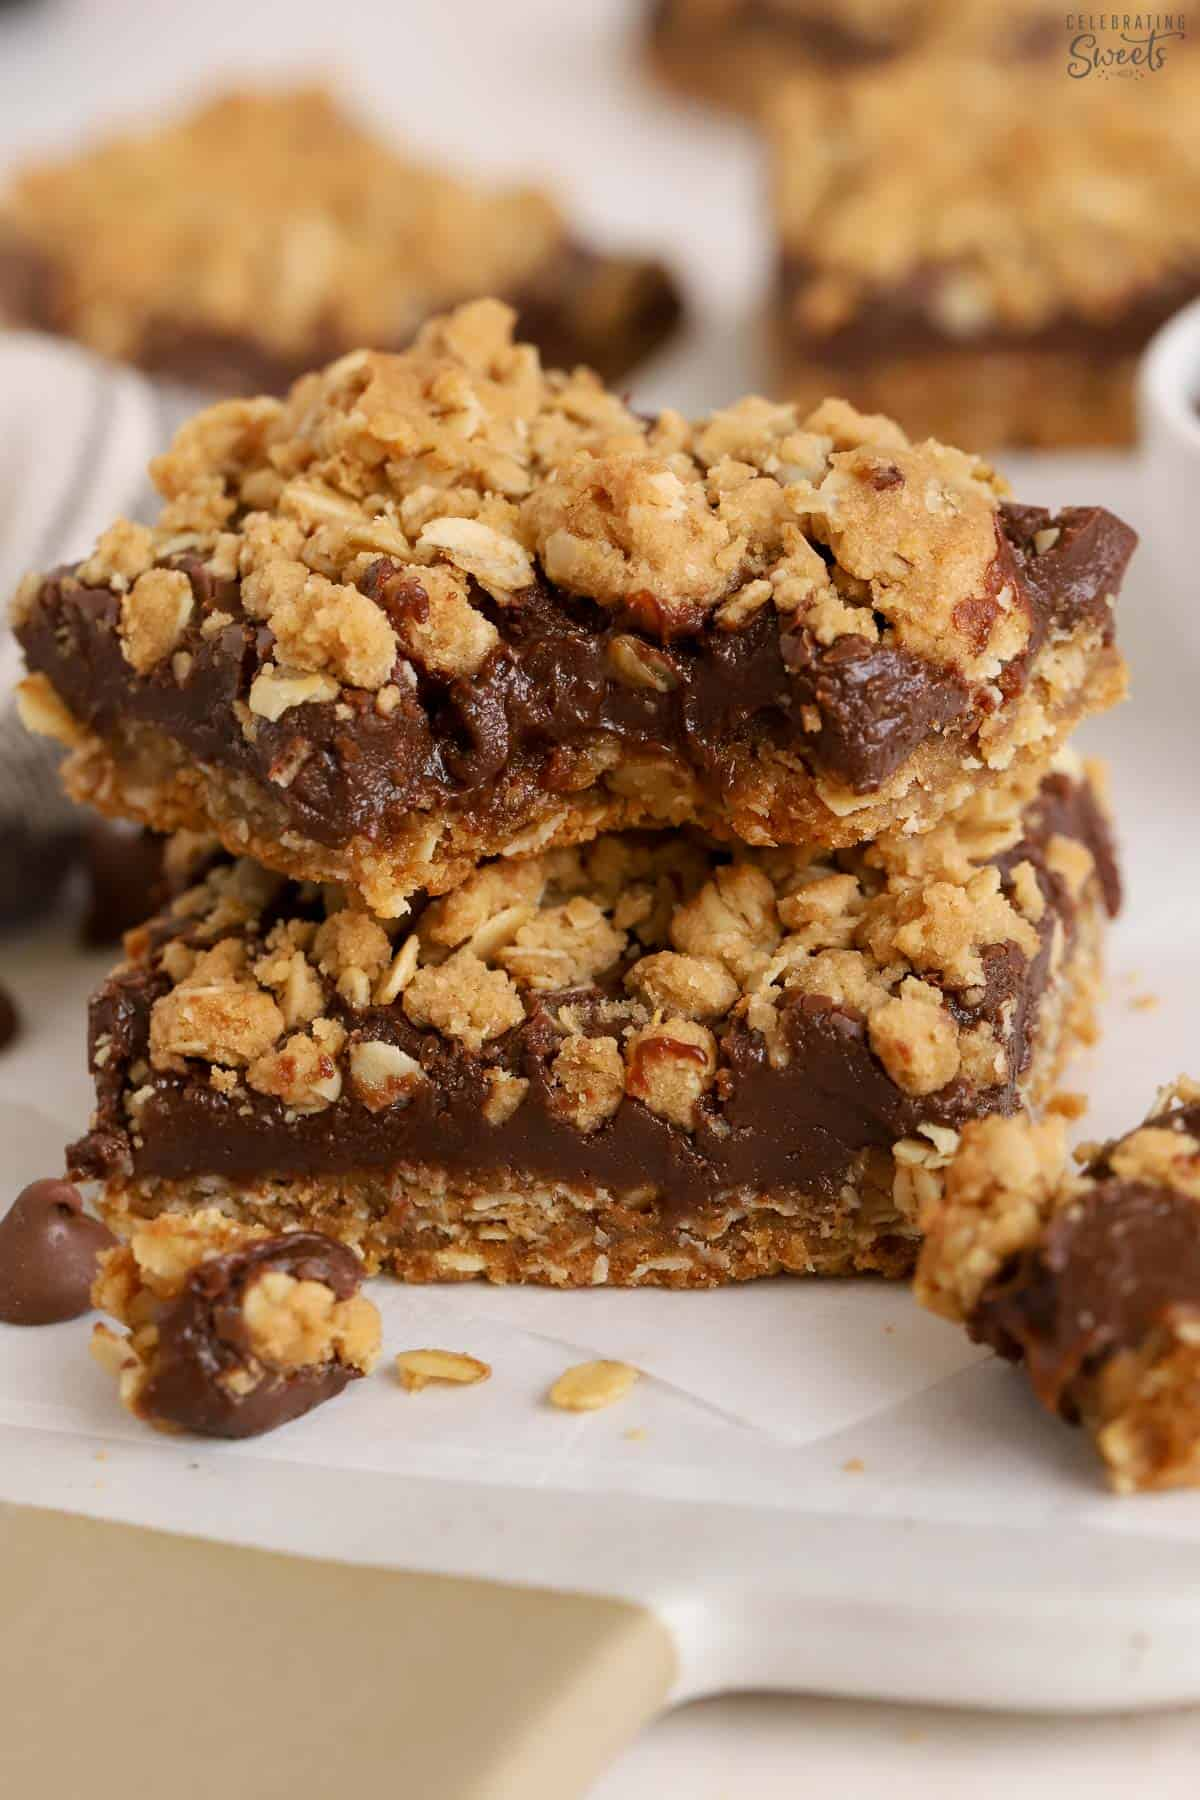 Stack of two Oatmeal Fudge Bars on parchment paper.